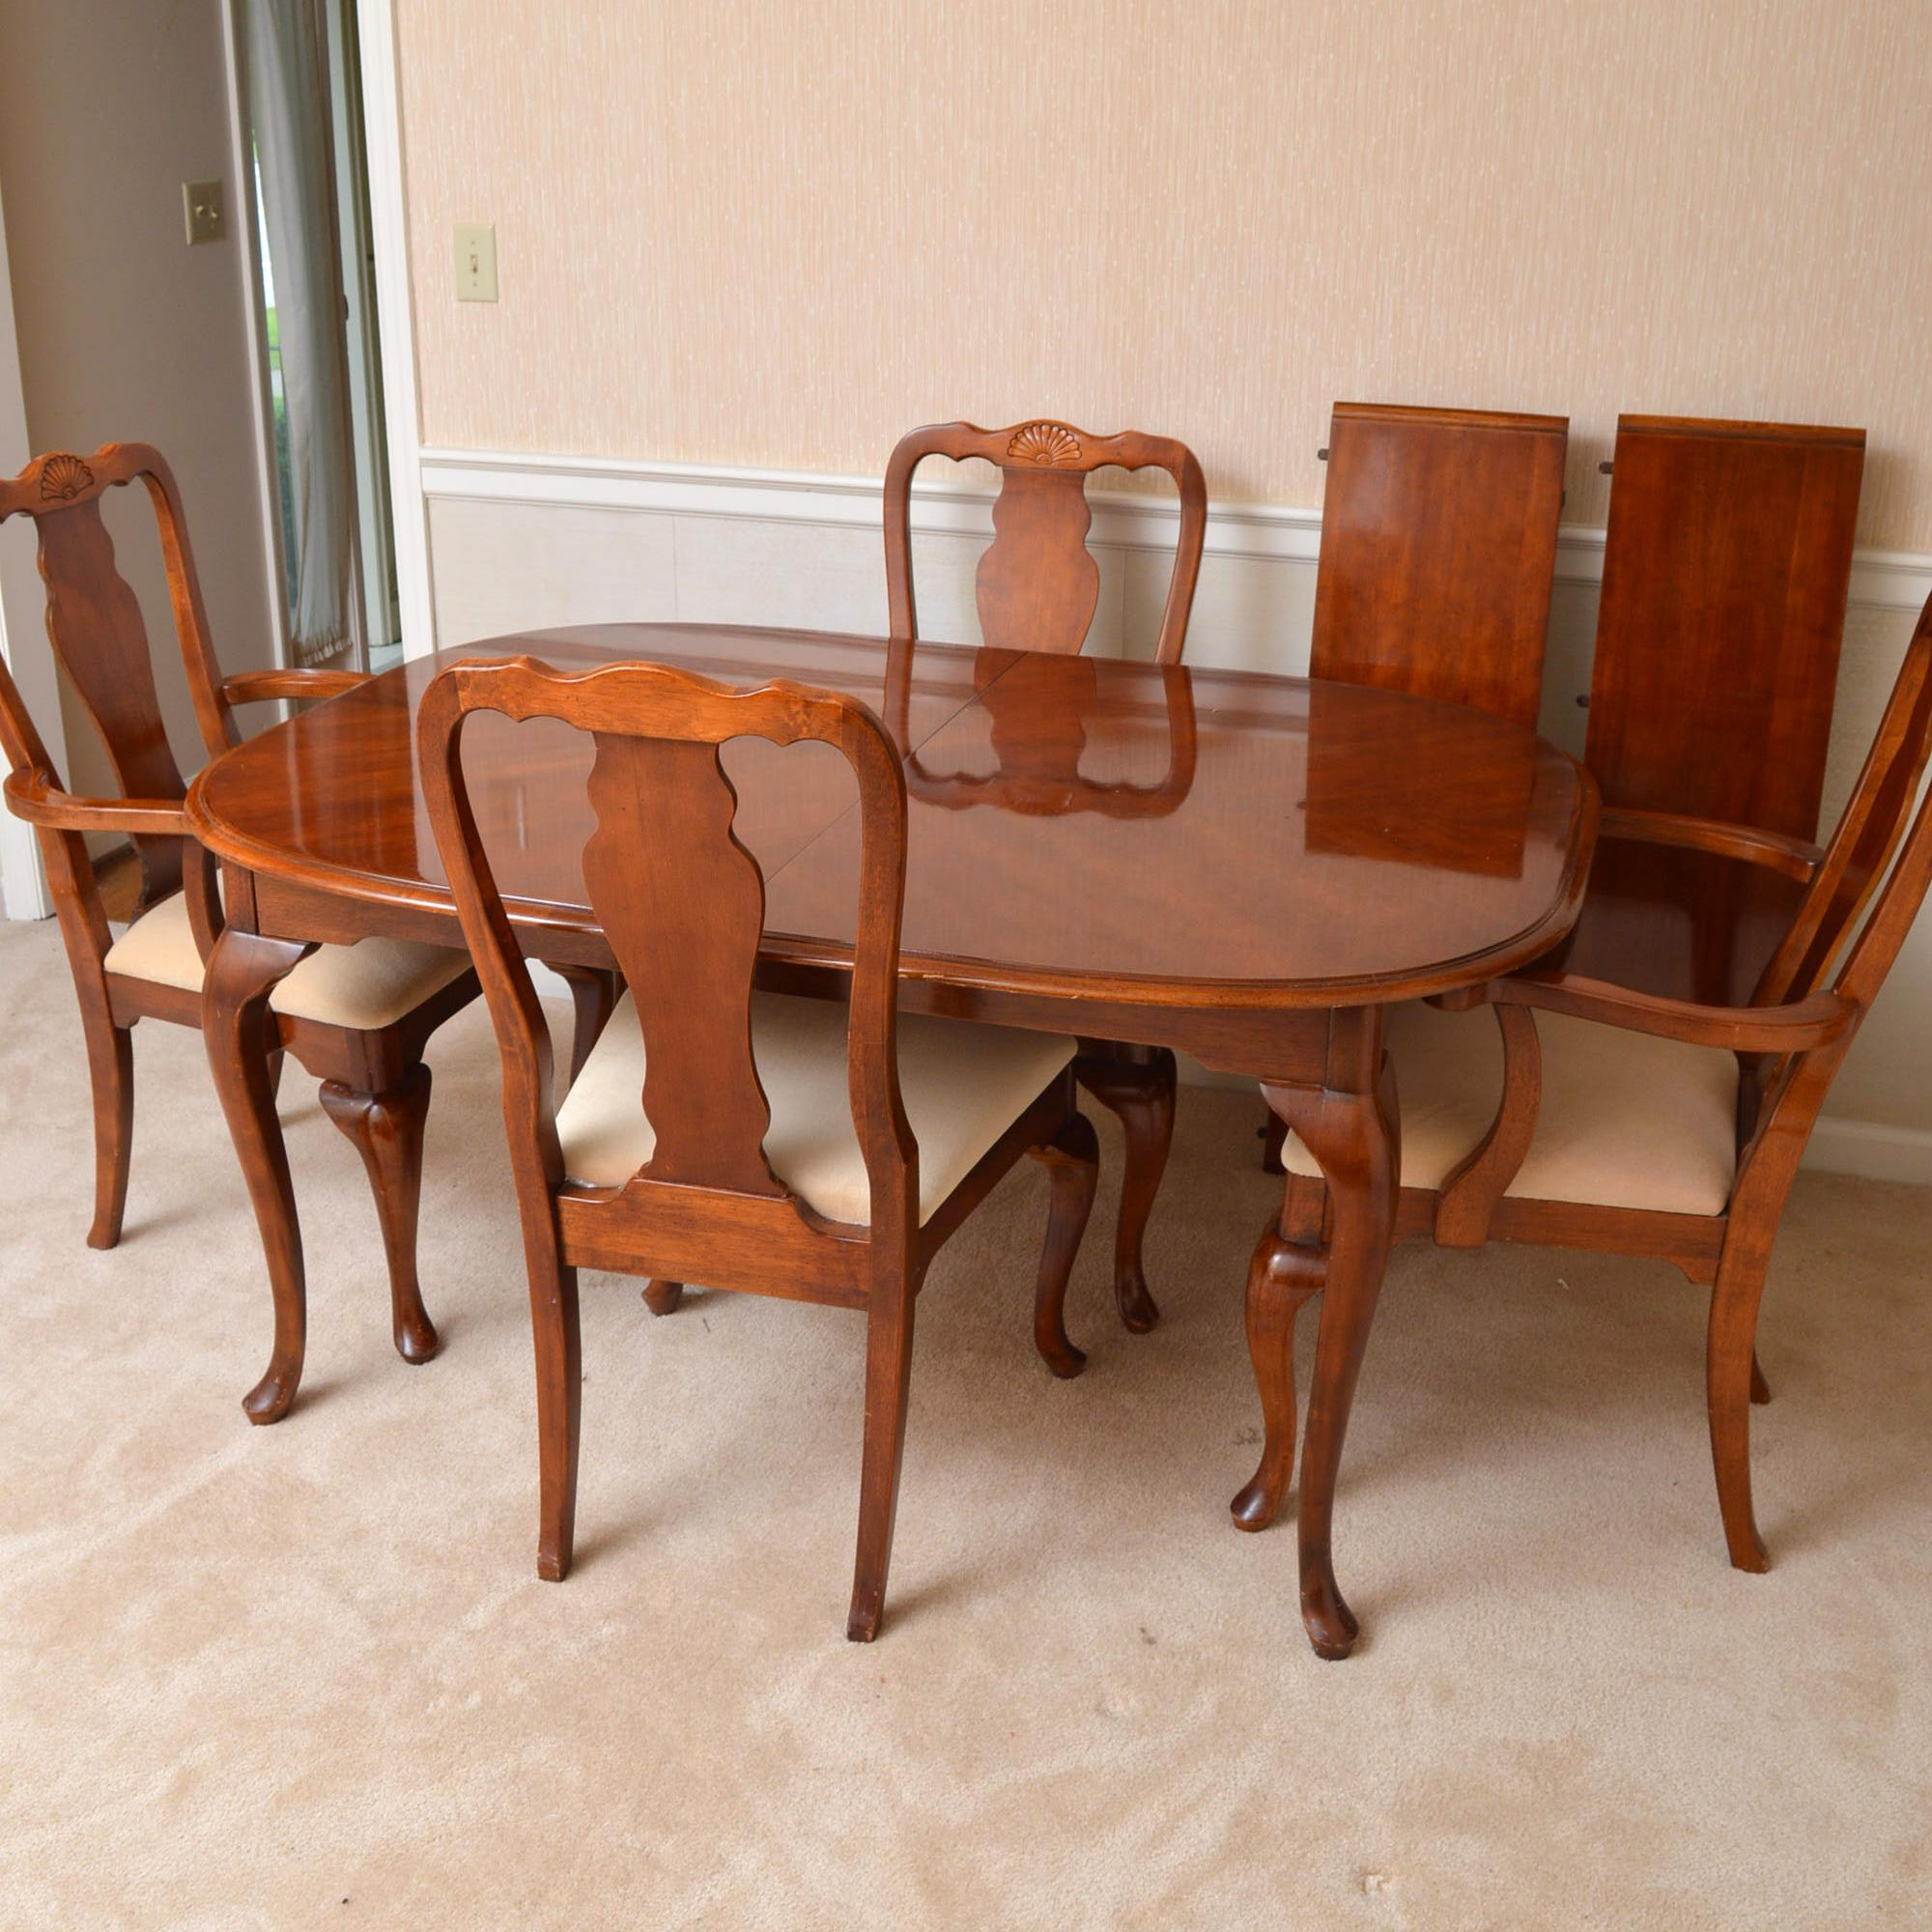 Queen Anne Style Dining Table and Chairs